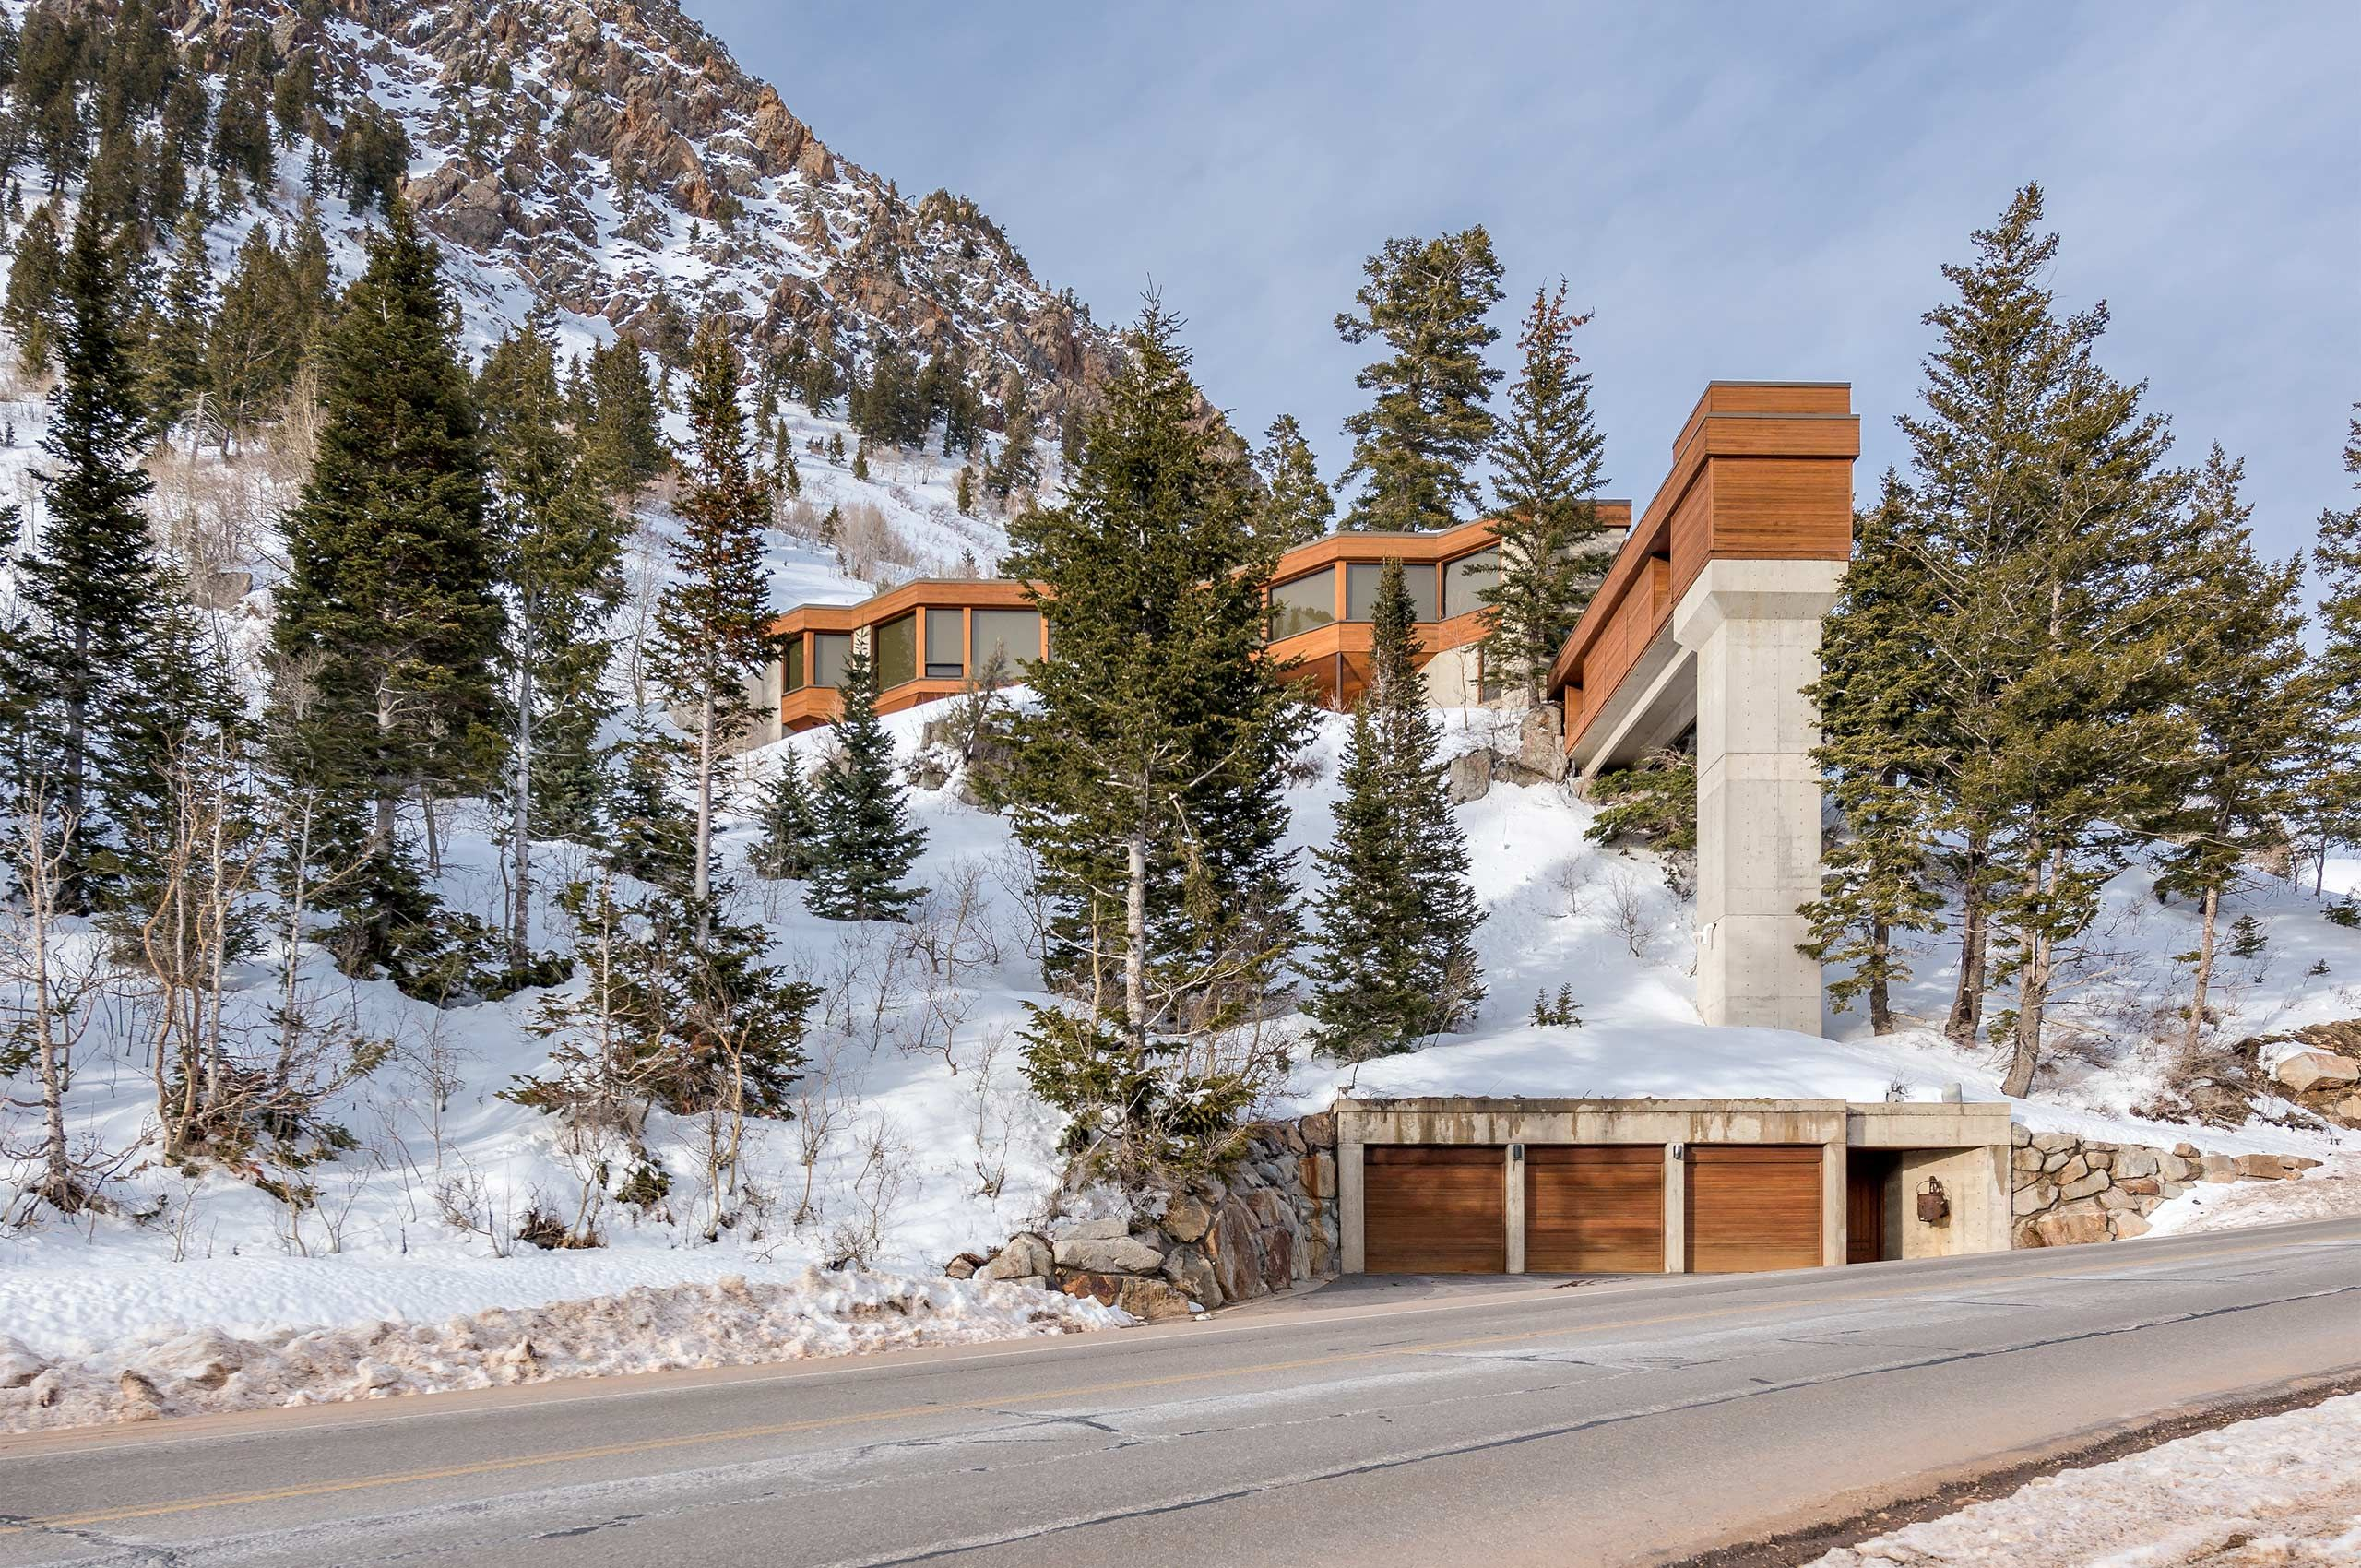 TED AND WILMA JOHNSON RESIDENCE AT SNOWBIRD, UTAH